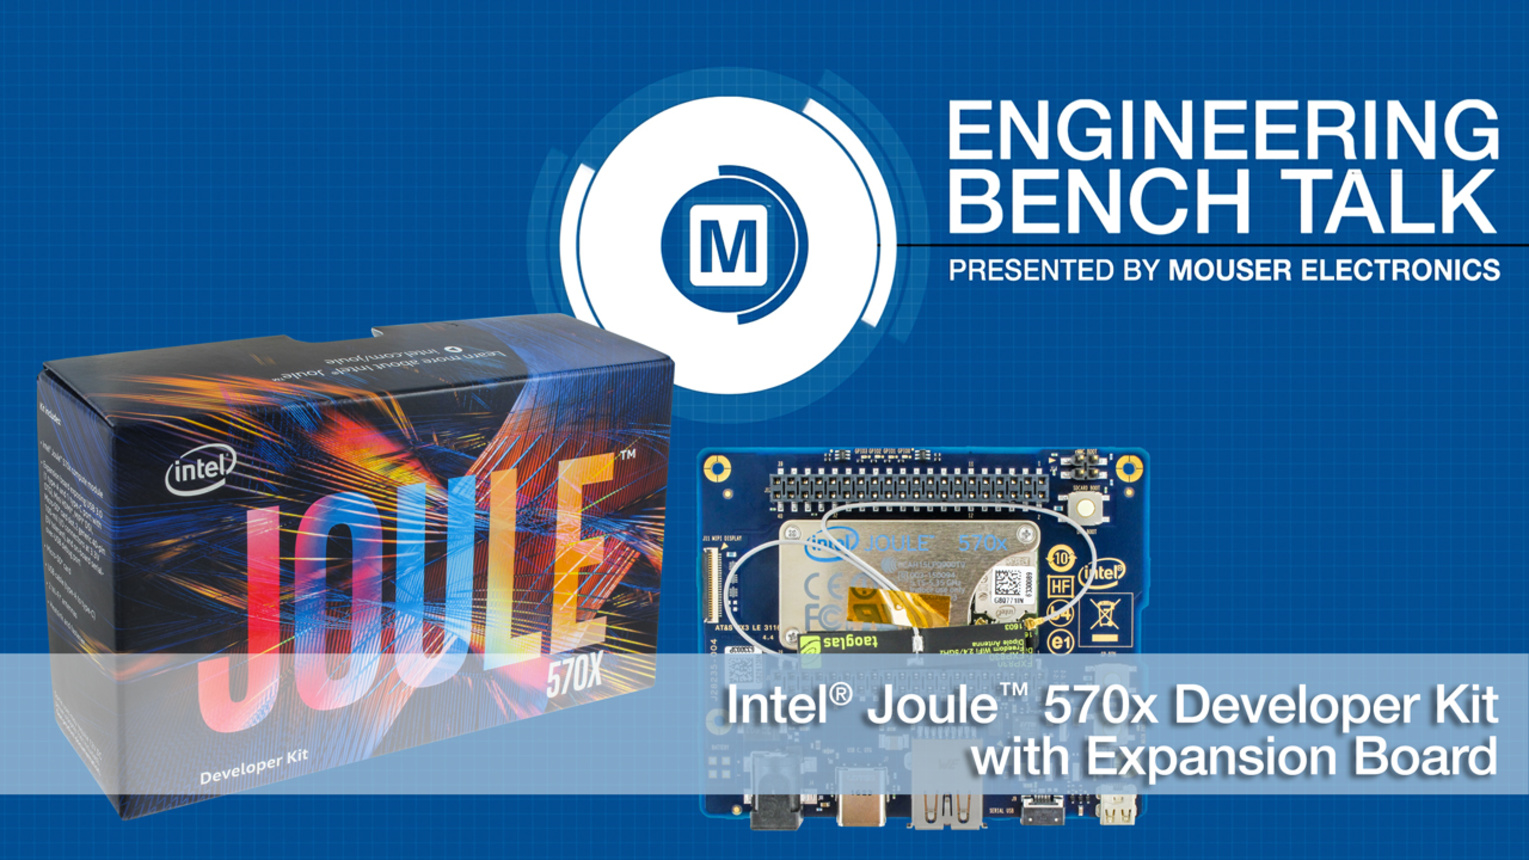 Intel Joule 570x Developer Kit with Expansion Board: Mouser's Engineering Bench Talk